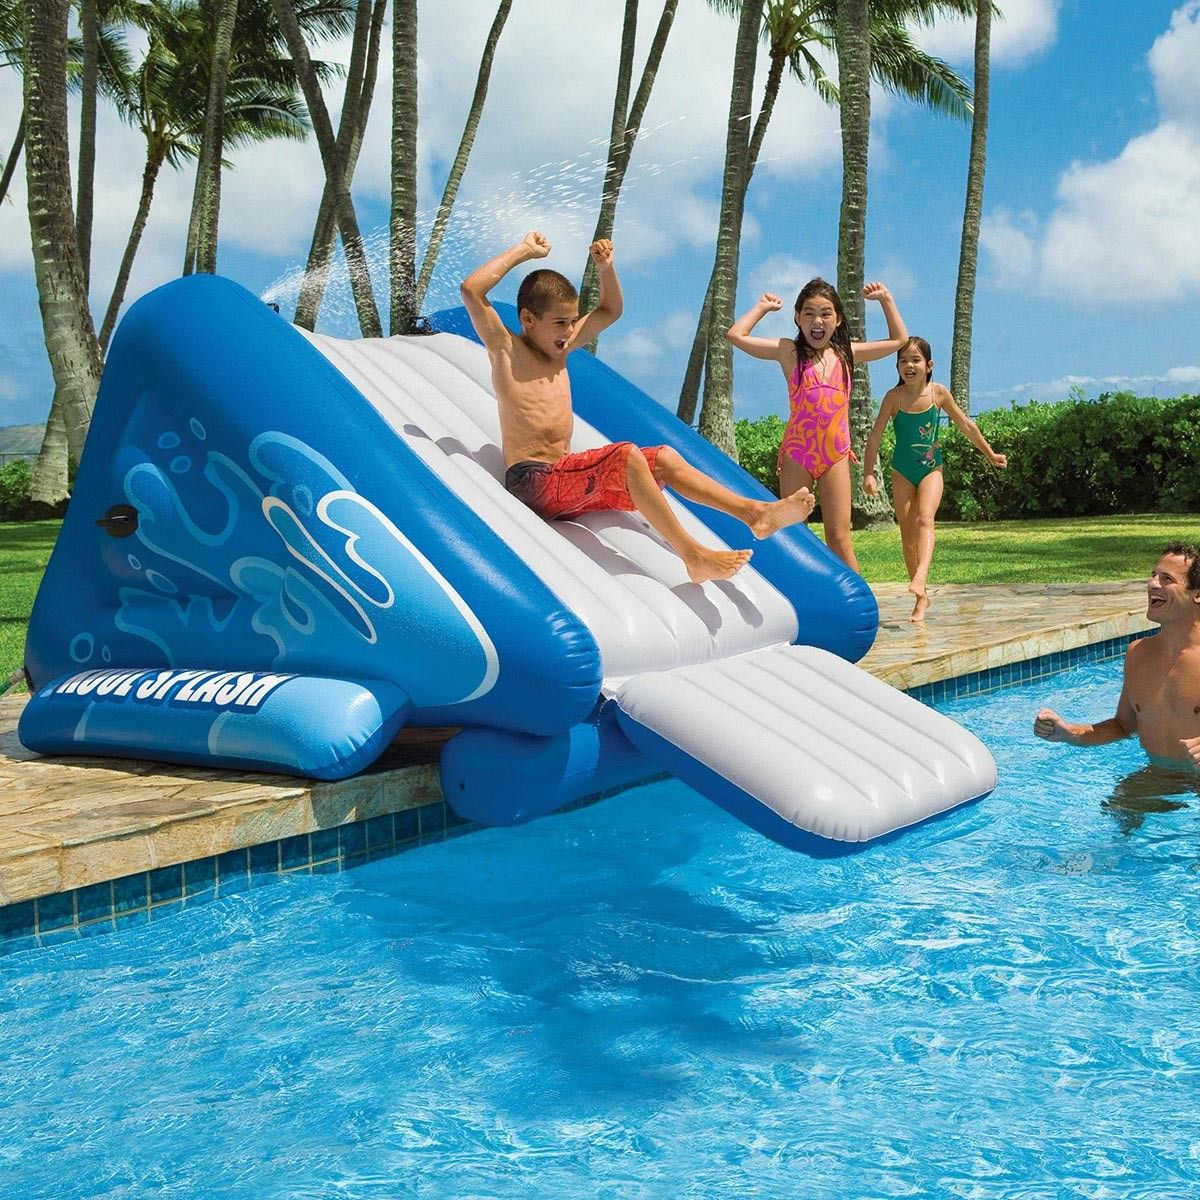 splish and splash on this awesome intex water slide this